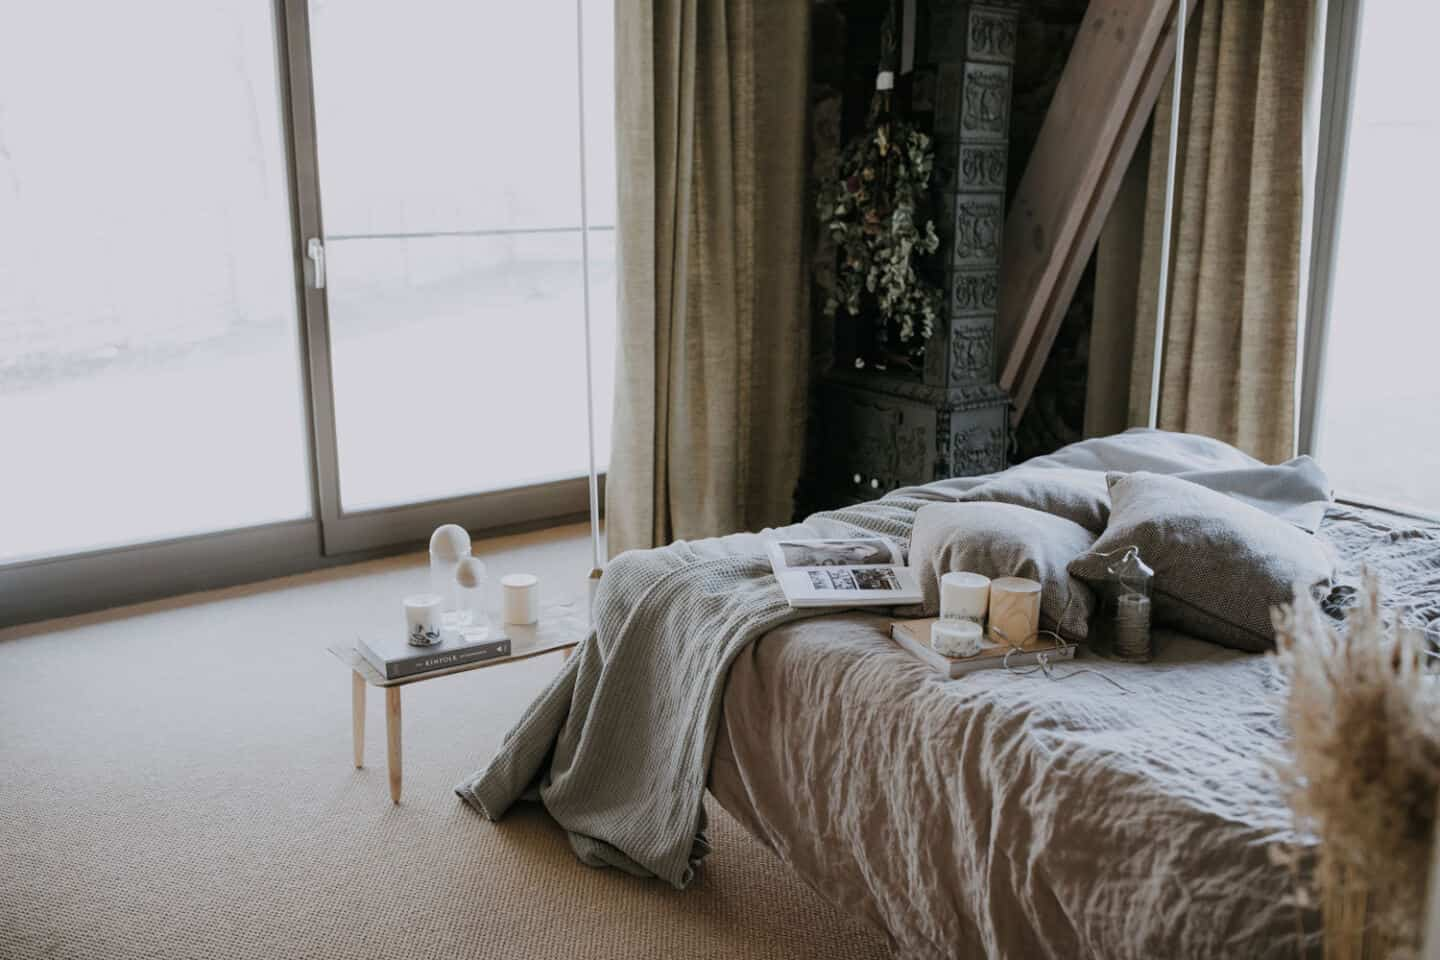 Textured Lives. Using texture in interiors to bring your home to life.  A bedroom with floor to ceiling wondows and natural light pouring in. The bed has a linen cover and there are books, candles and cushions on the bed.